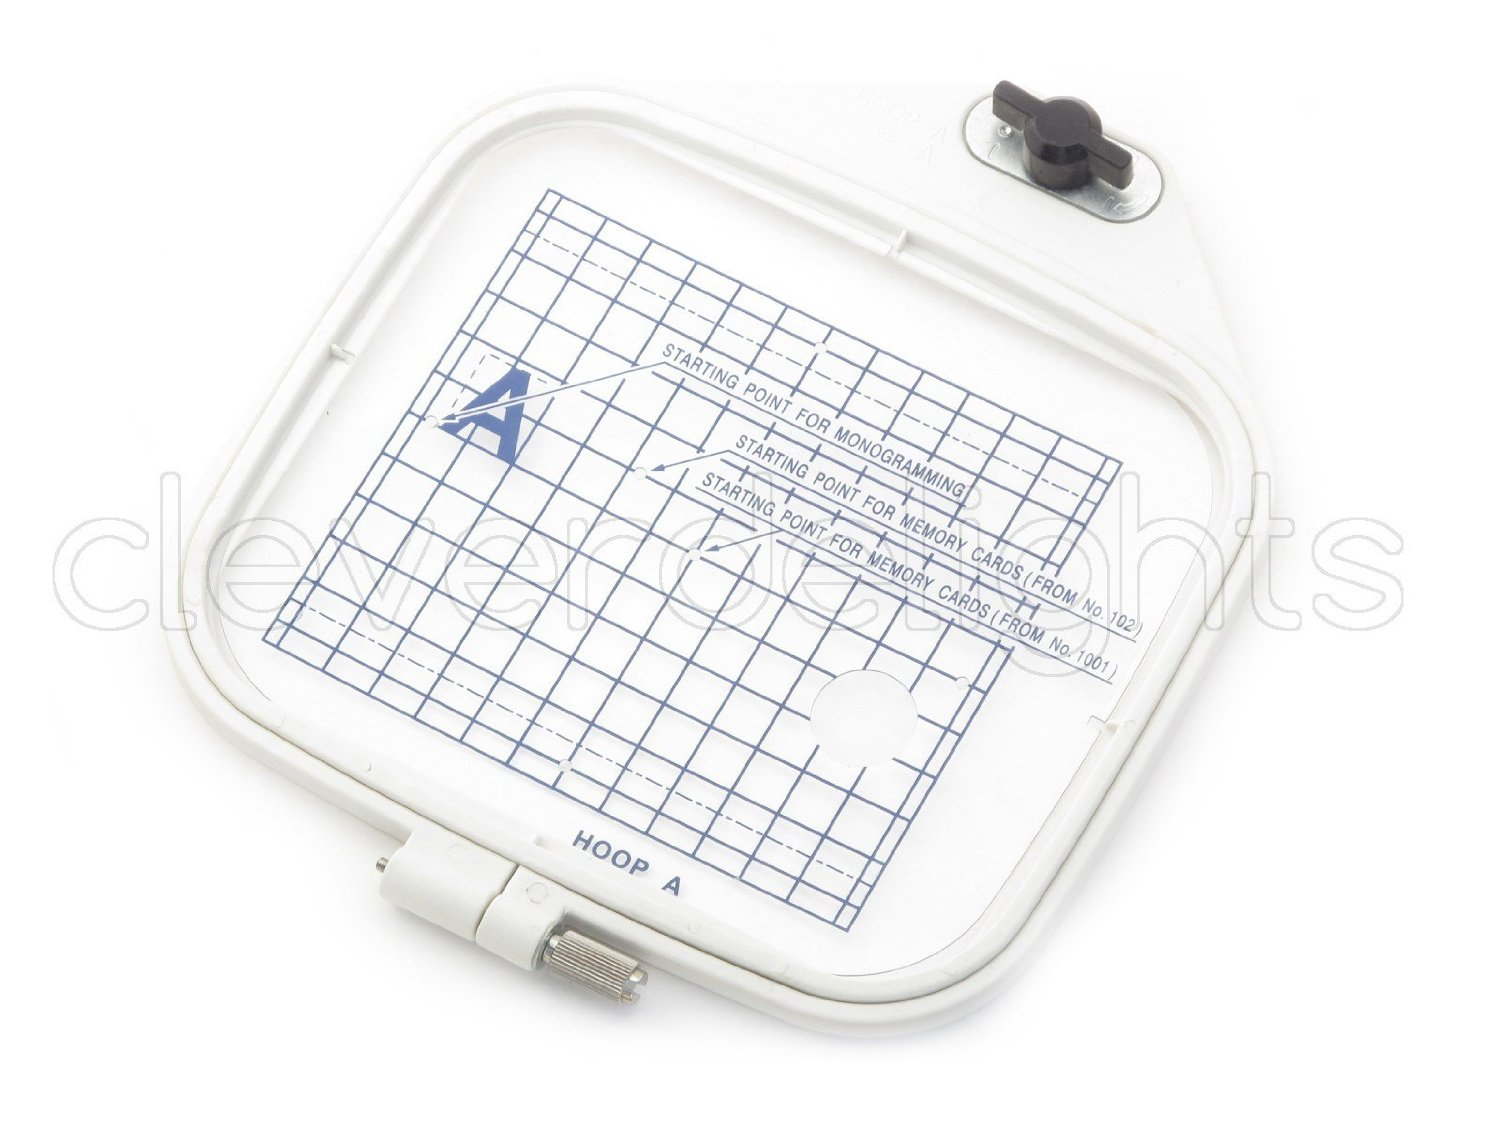 Review embroidery hoop a 4 3 x 5 for janome mc300e for Janome memory craft 9500